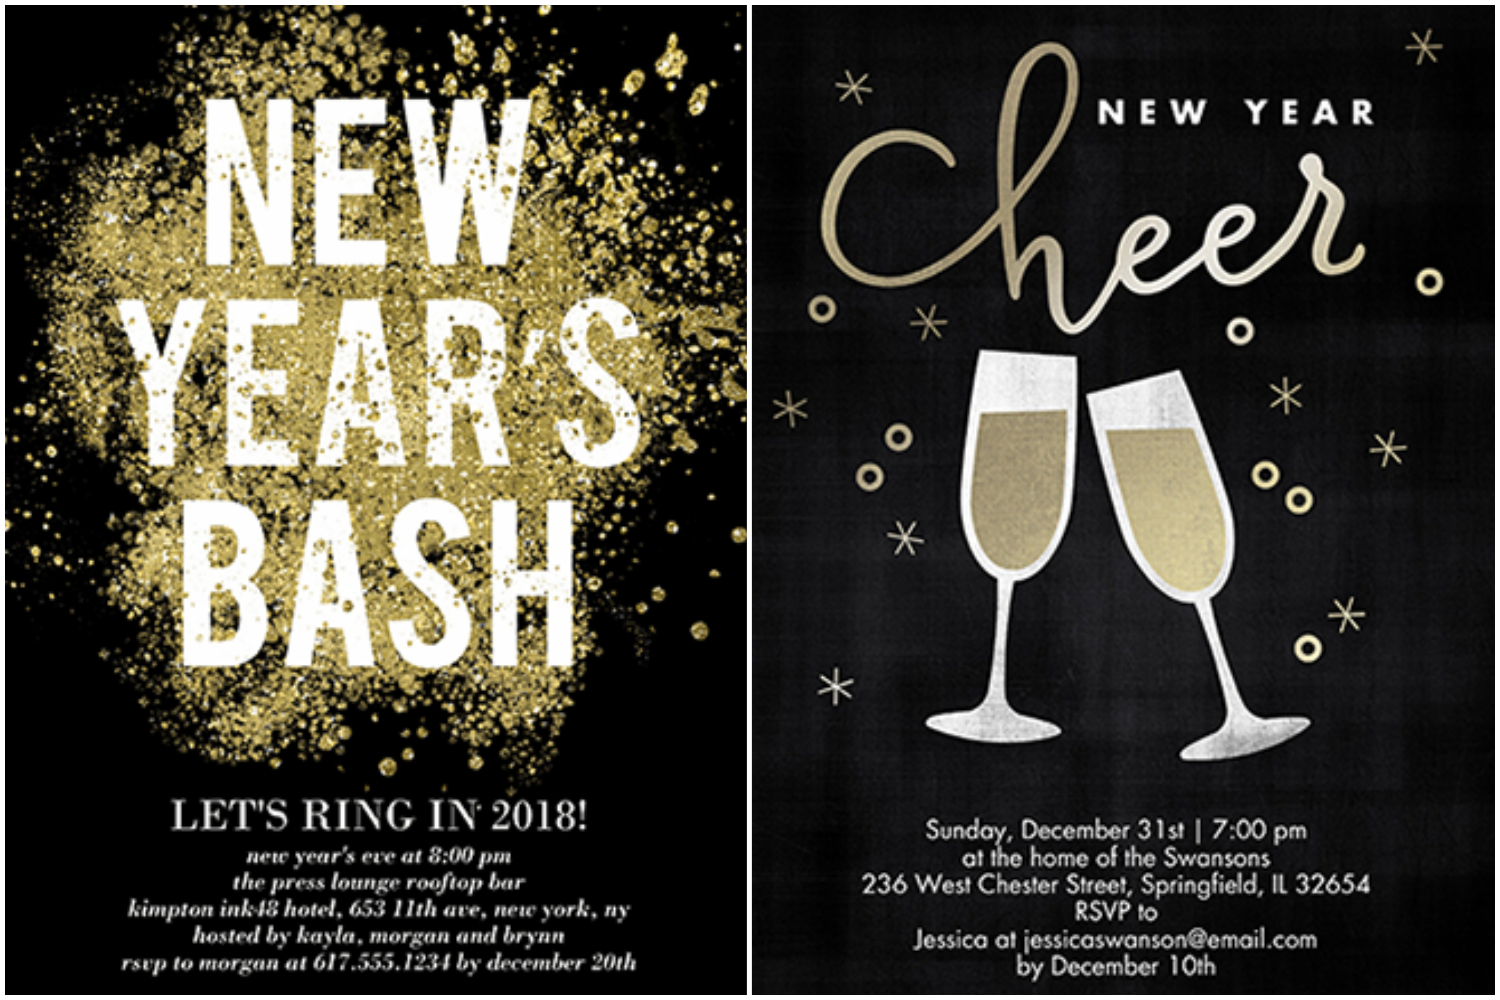 picture-of-tiny-prints-new-years-eve-invitations.jpg